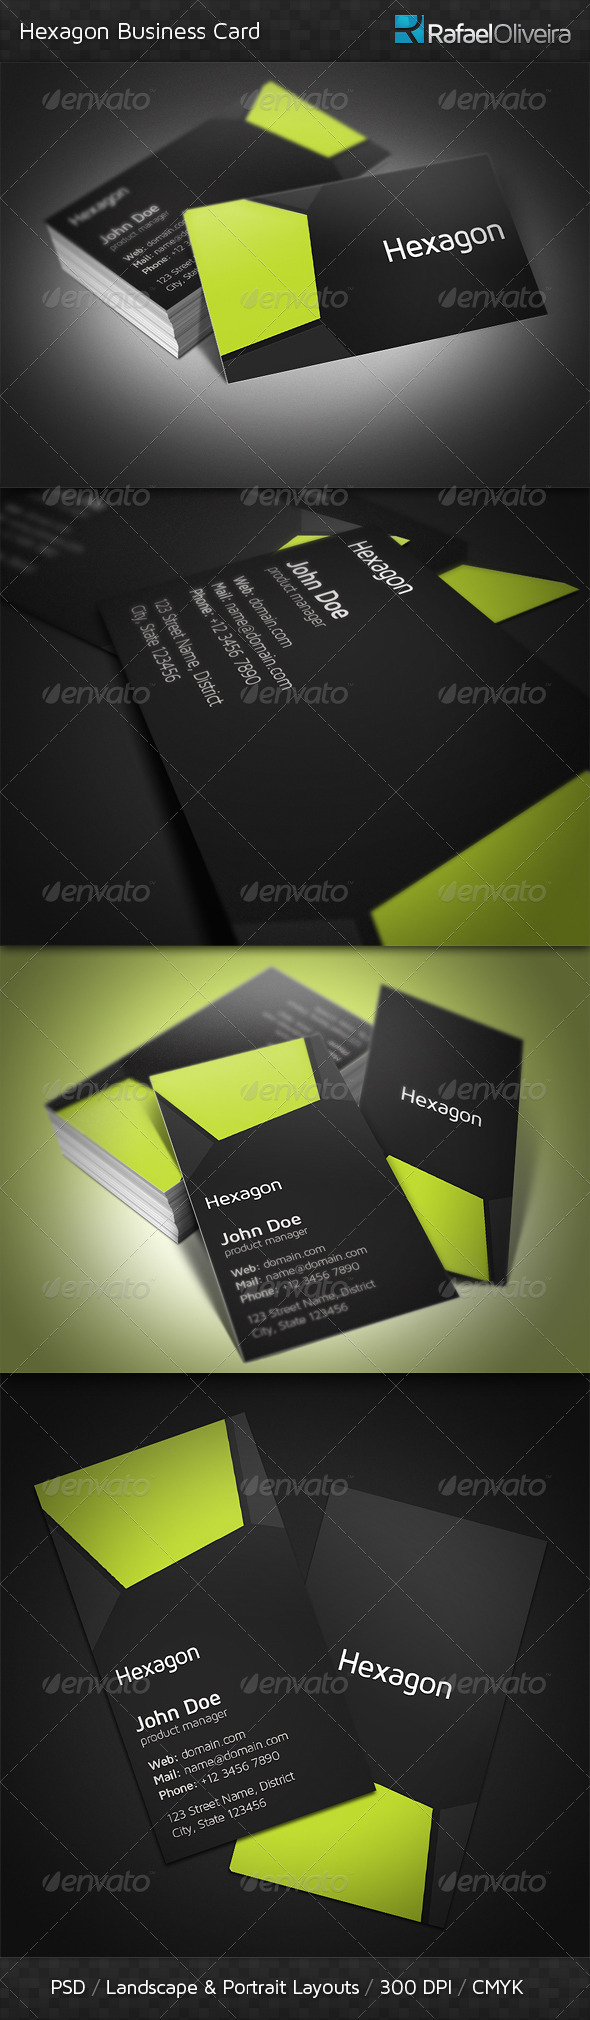 GraphicRiver Hexagon Business Card 3671877